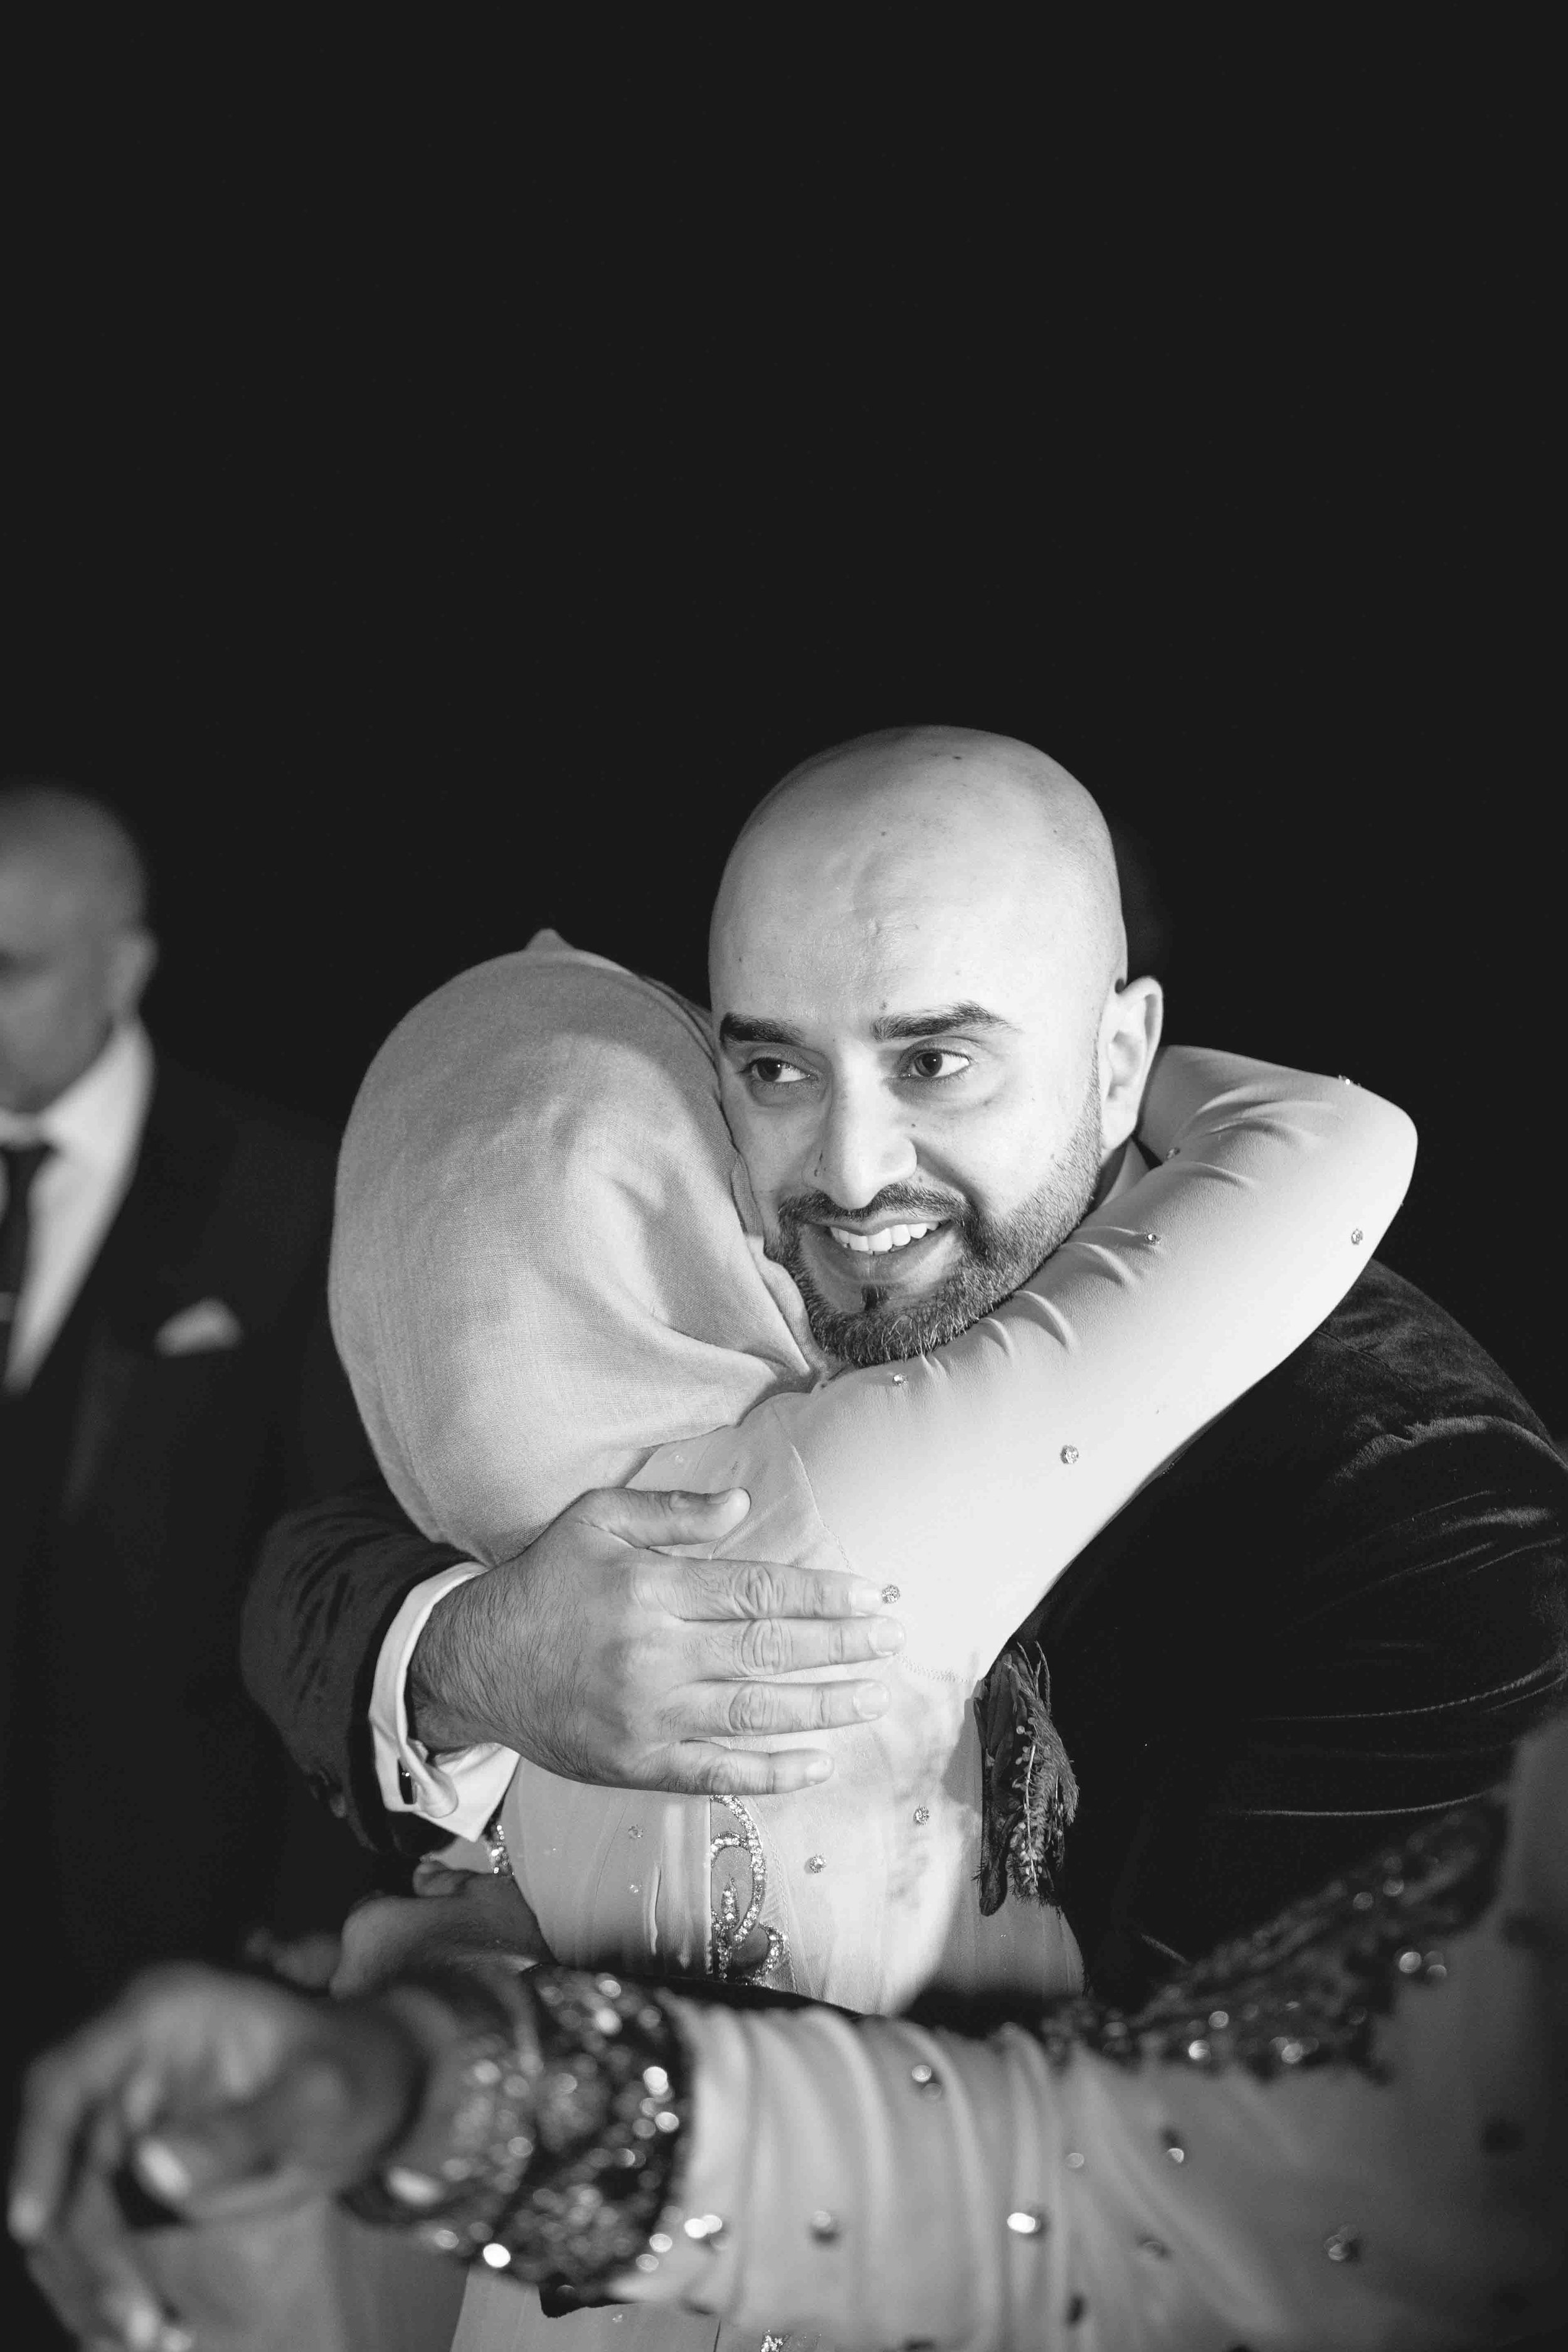 Asian Wedding Photographer Opu Sultan Photography Lyme Park Scotland Edinburgh Glasgow London Manchester Liverpool Birmingham Wedding Photos prewed shoot Azman & Saira Blog-166.jpg